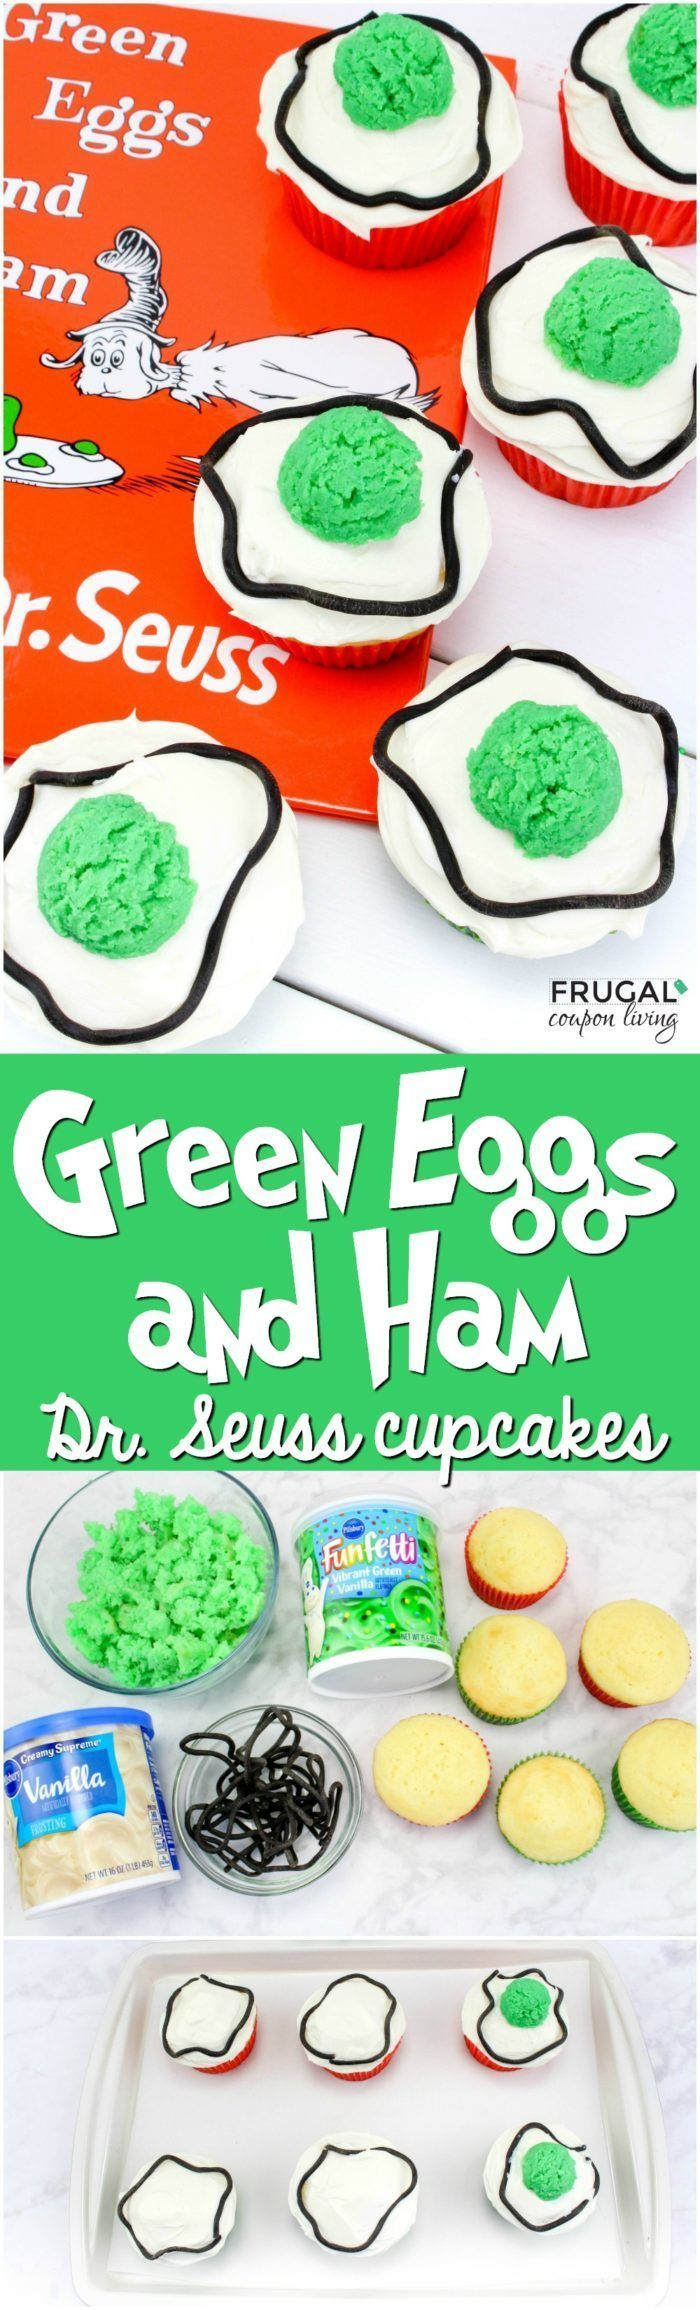 Dr. Seuss Day Green Eggs and Ham Dr. Seuss Cupcakes. Made with boxed cake mix an...